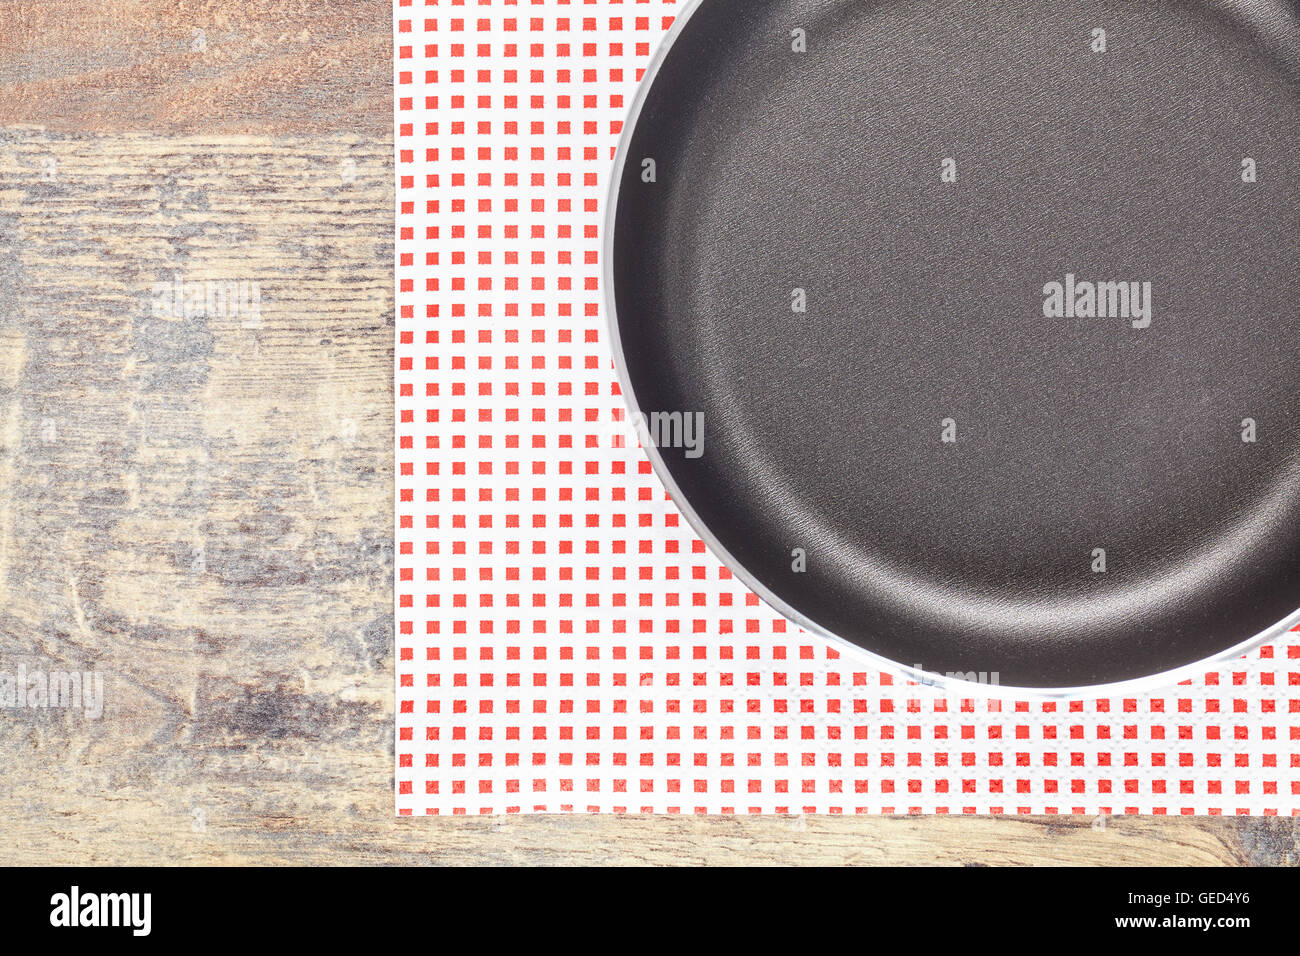 Top view of new empty frying pan on a napkin and wooden table, kitchen background. - Stock Image